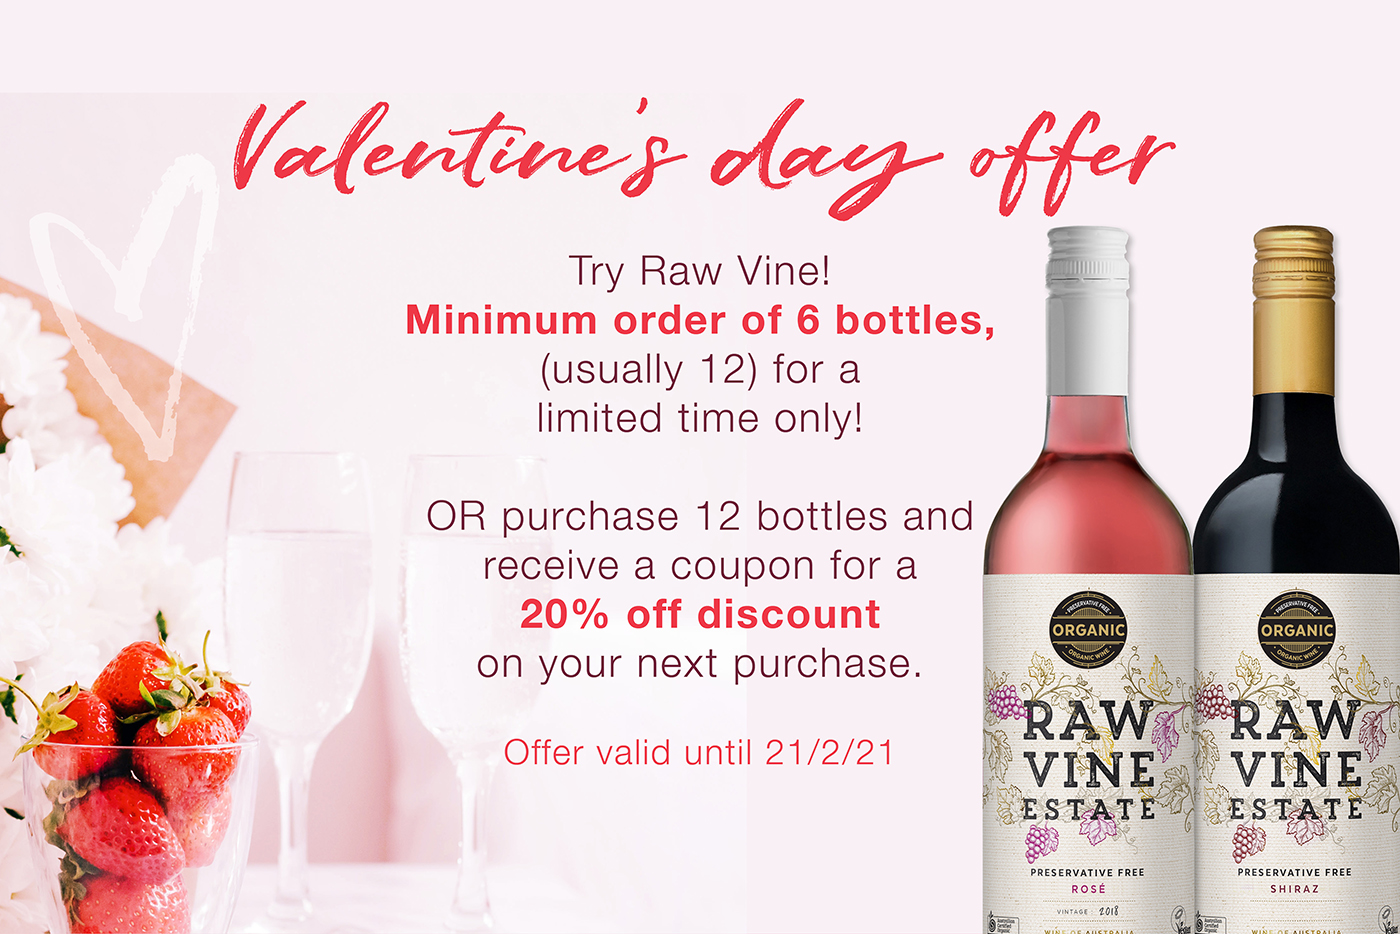 https://www.rawvineestate.com/category/6087/organic-preservative-free-wine-shop/